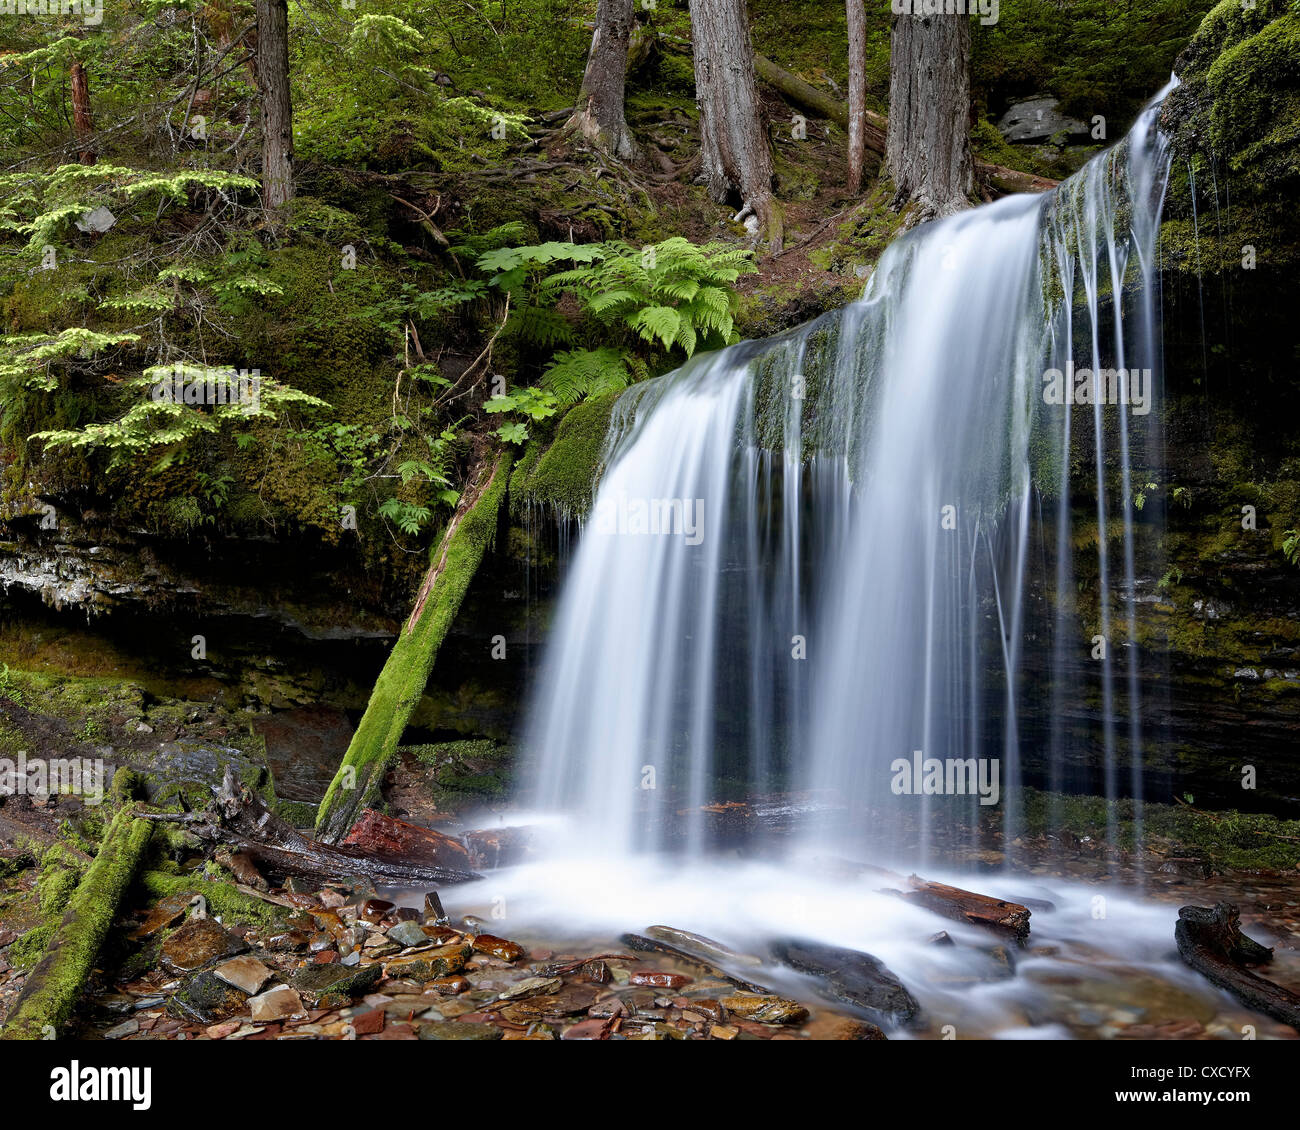 Fern Falls, Coeur d'Alene National Forest, Idaho Panhandle National Forests, Idaho, United States of America, - Stock Image